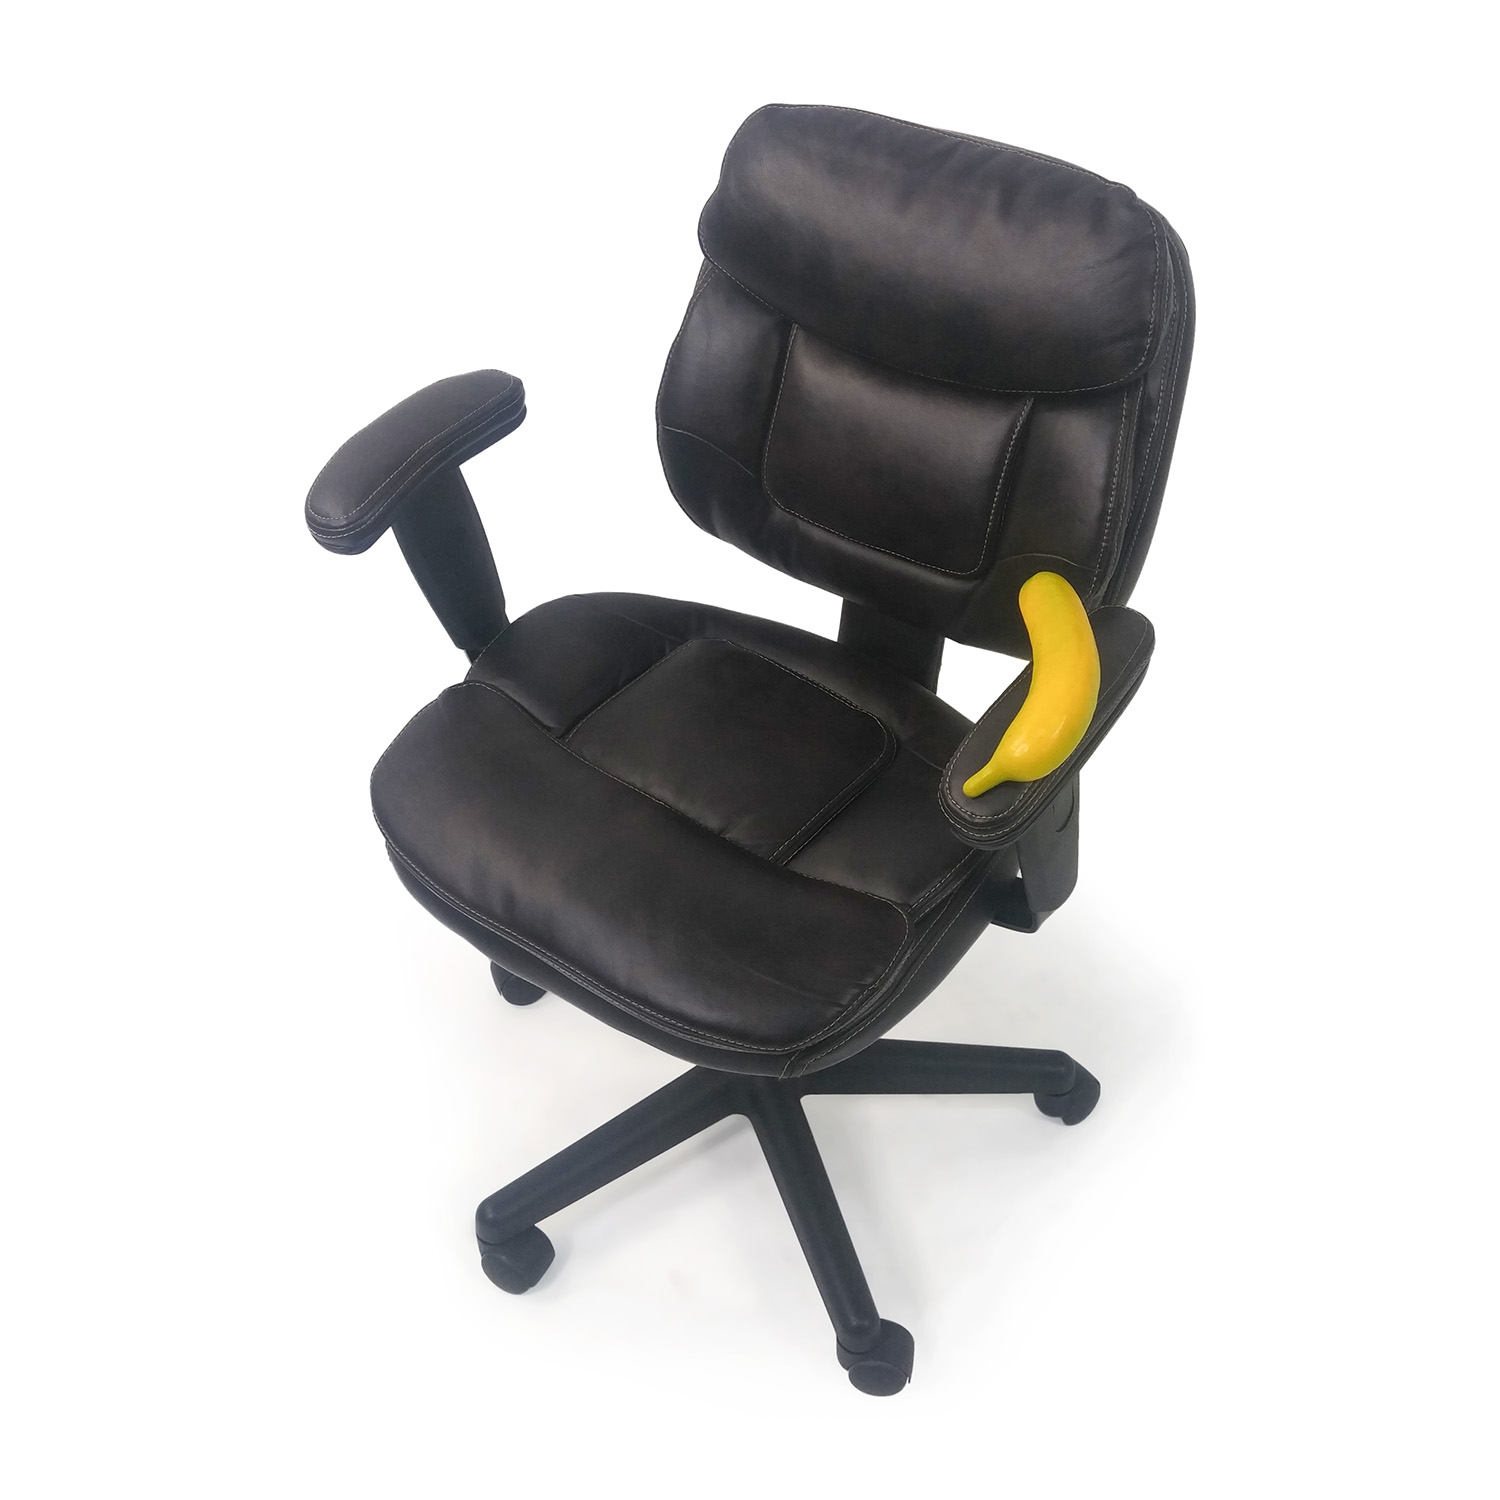 Plush Office Chair 86 Off Plush Faux Leather Office Chair Chairs